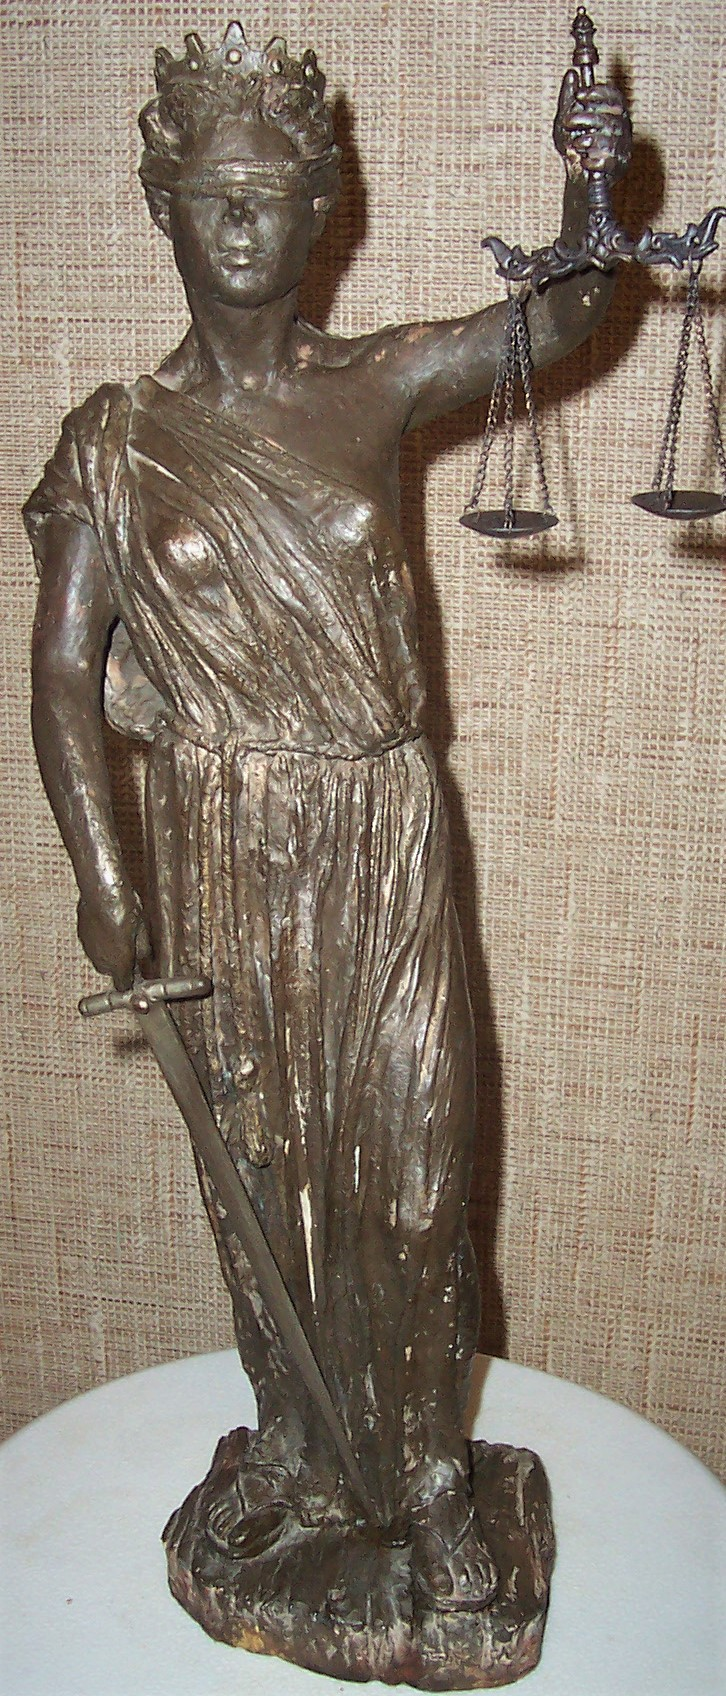 Lady Justice artwork by Margaret Rey - art listed for sale on Artplode